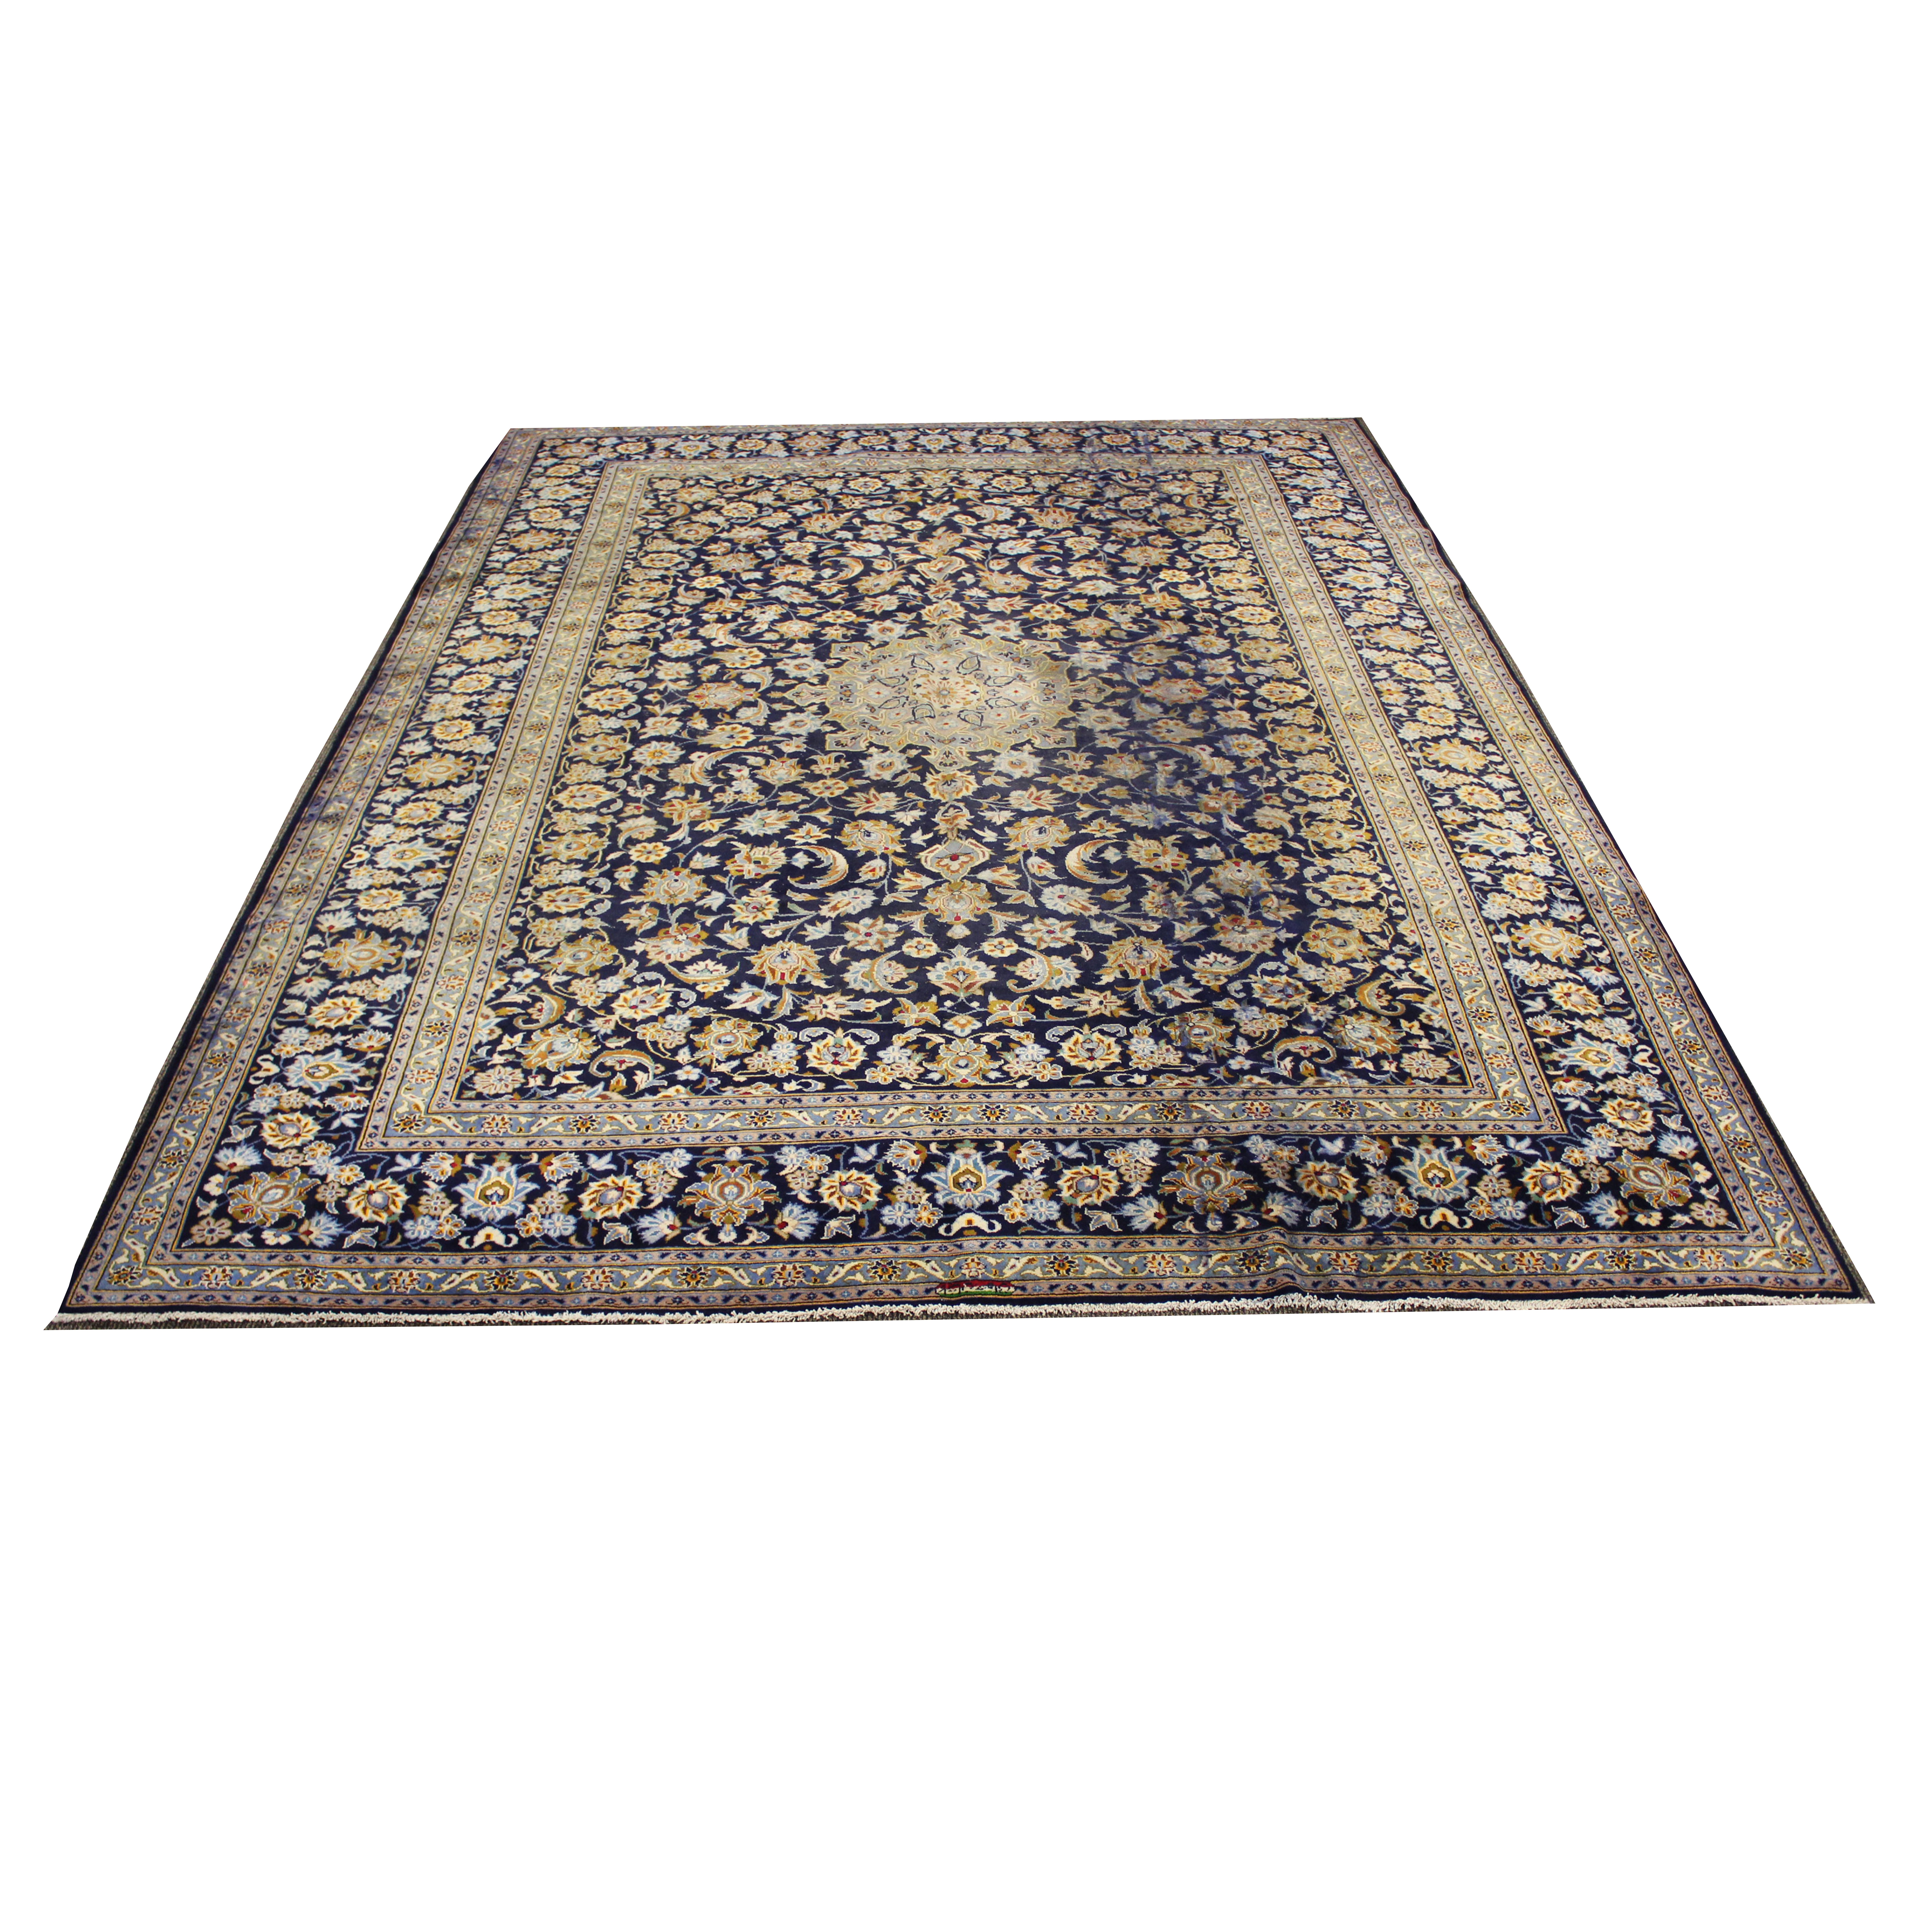 Signed Semi-Antique Hand-Knotted Persian Kashan Room Size Rug